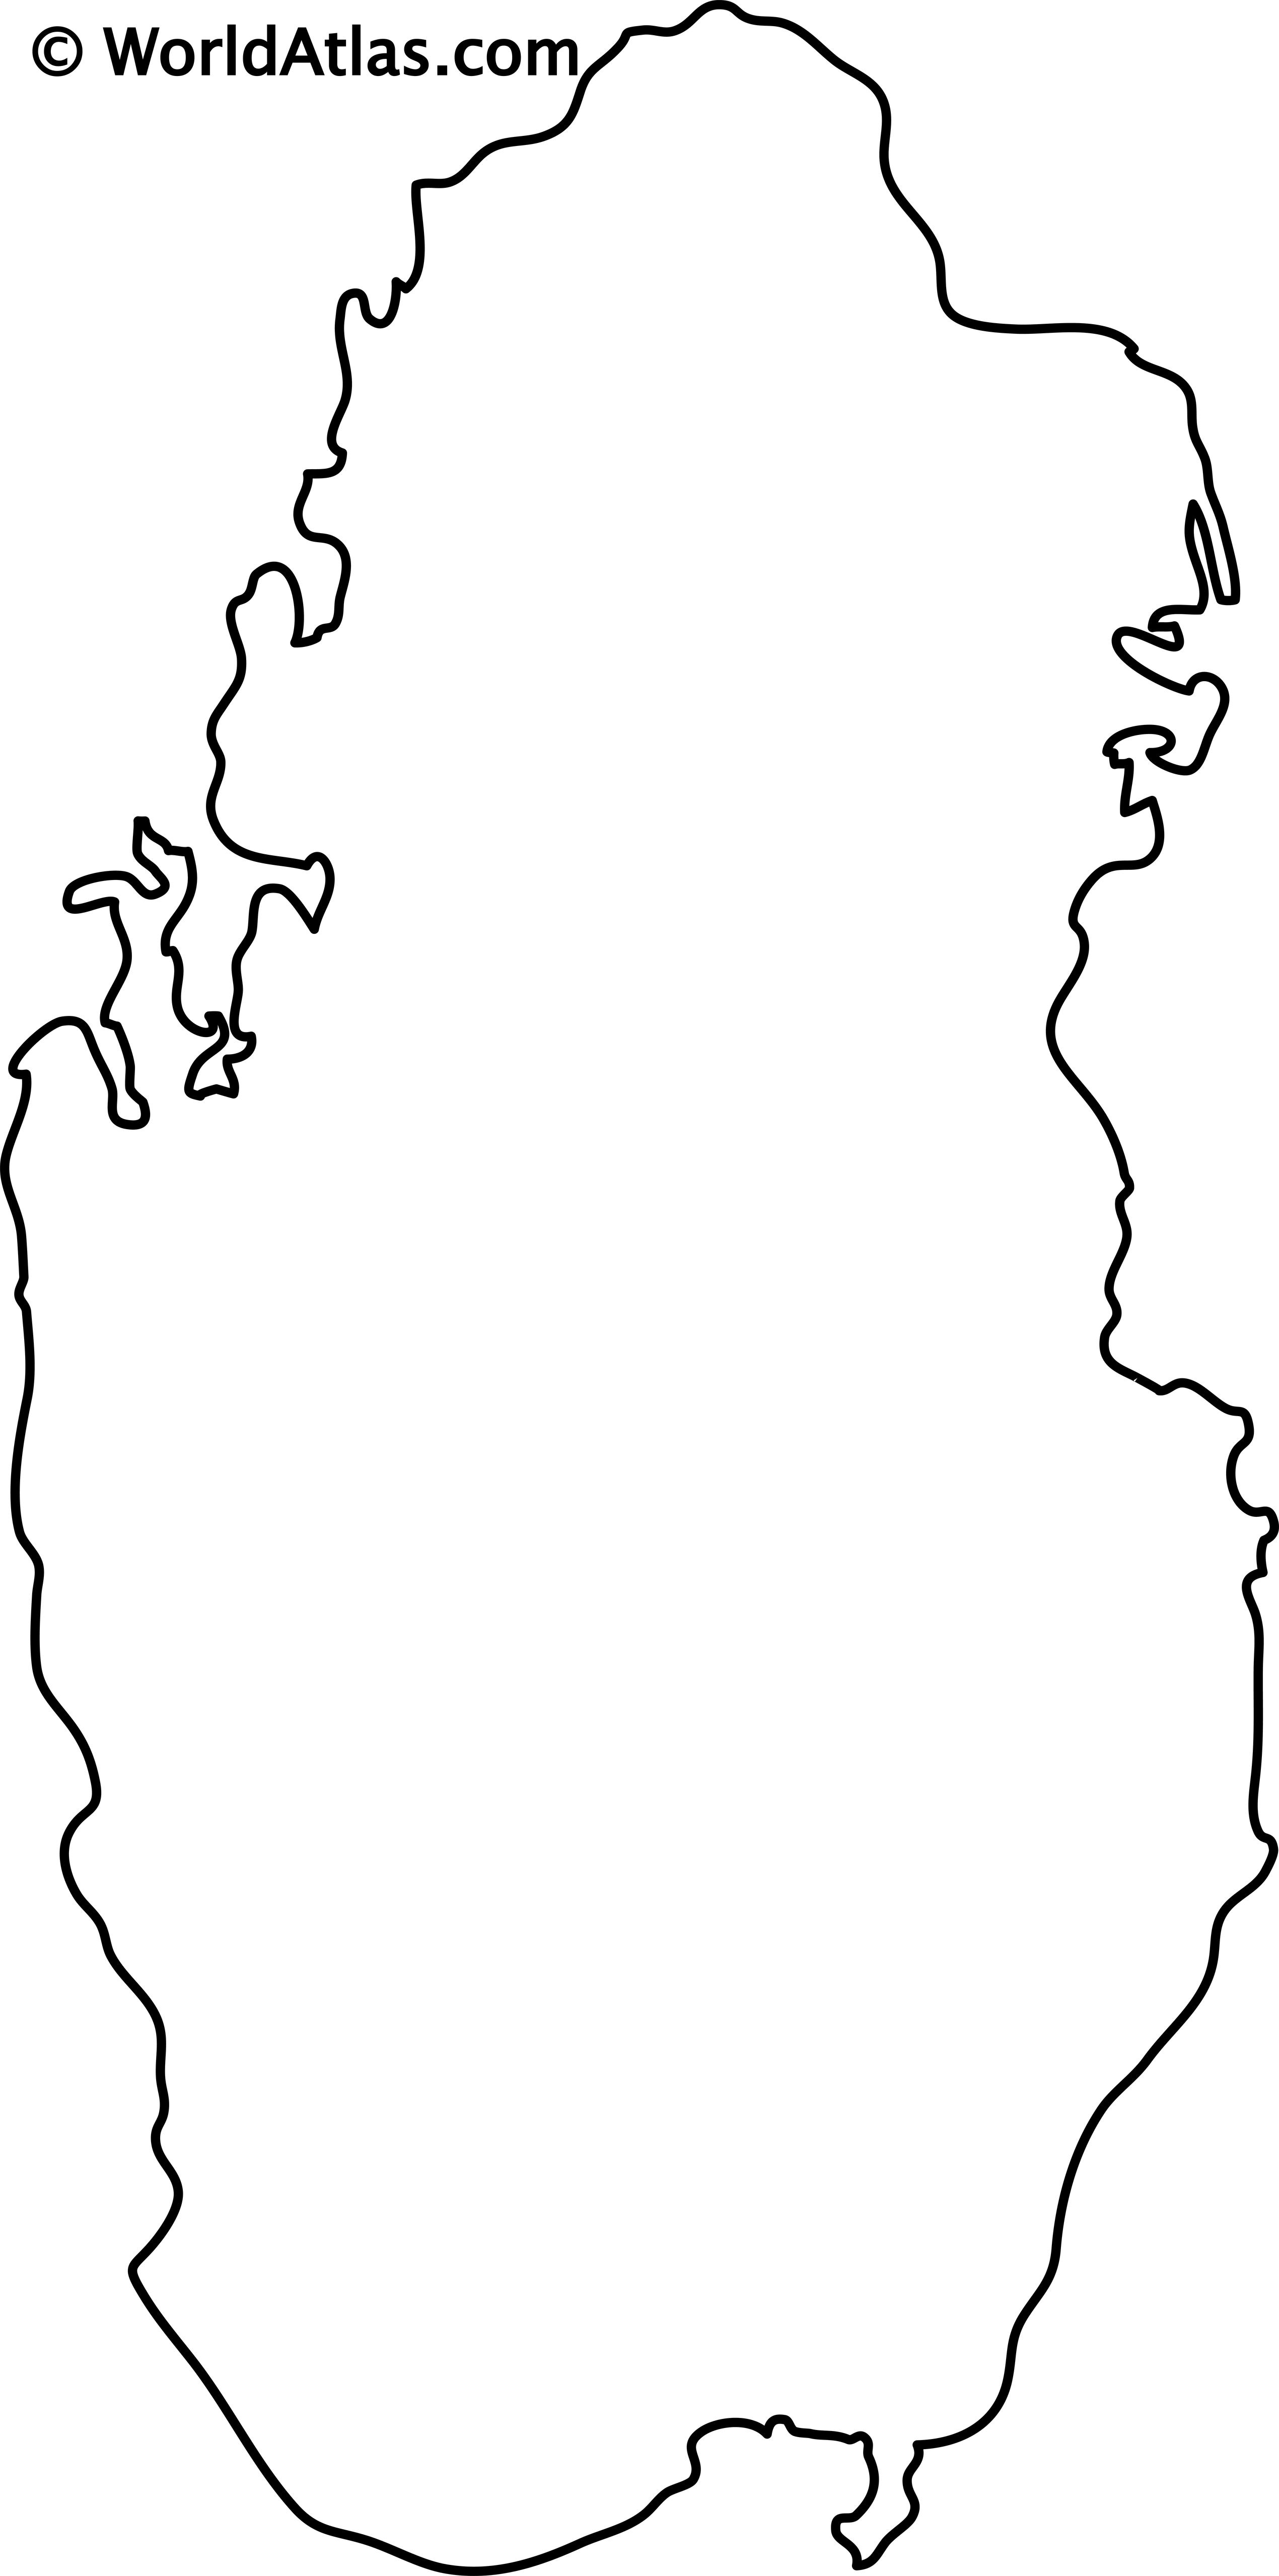 Blank Outline Map of Qatar